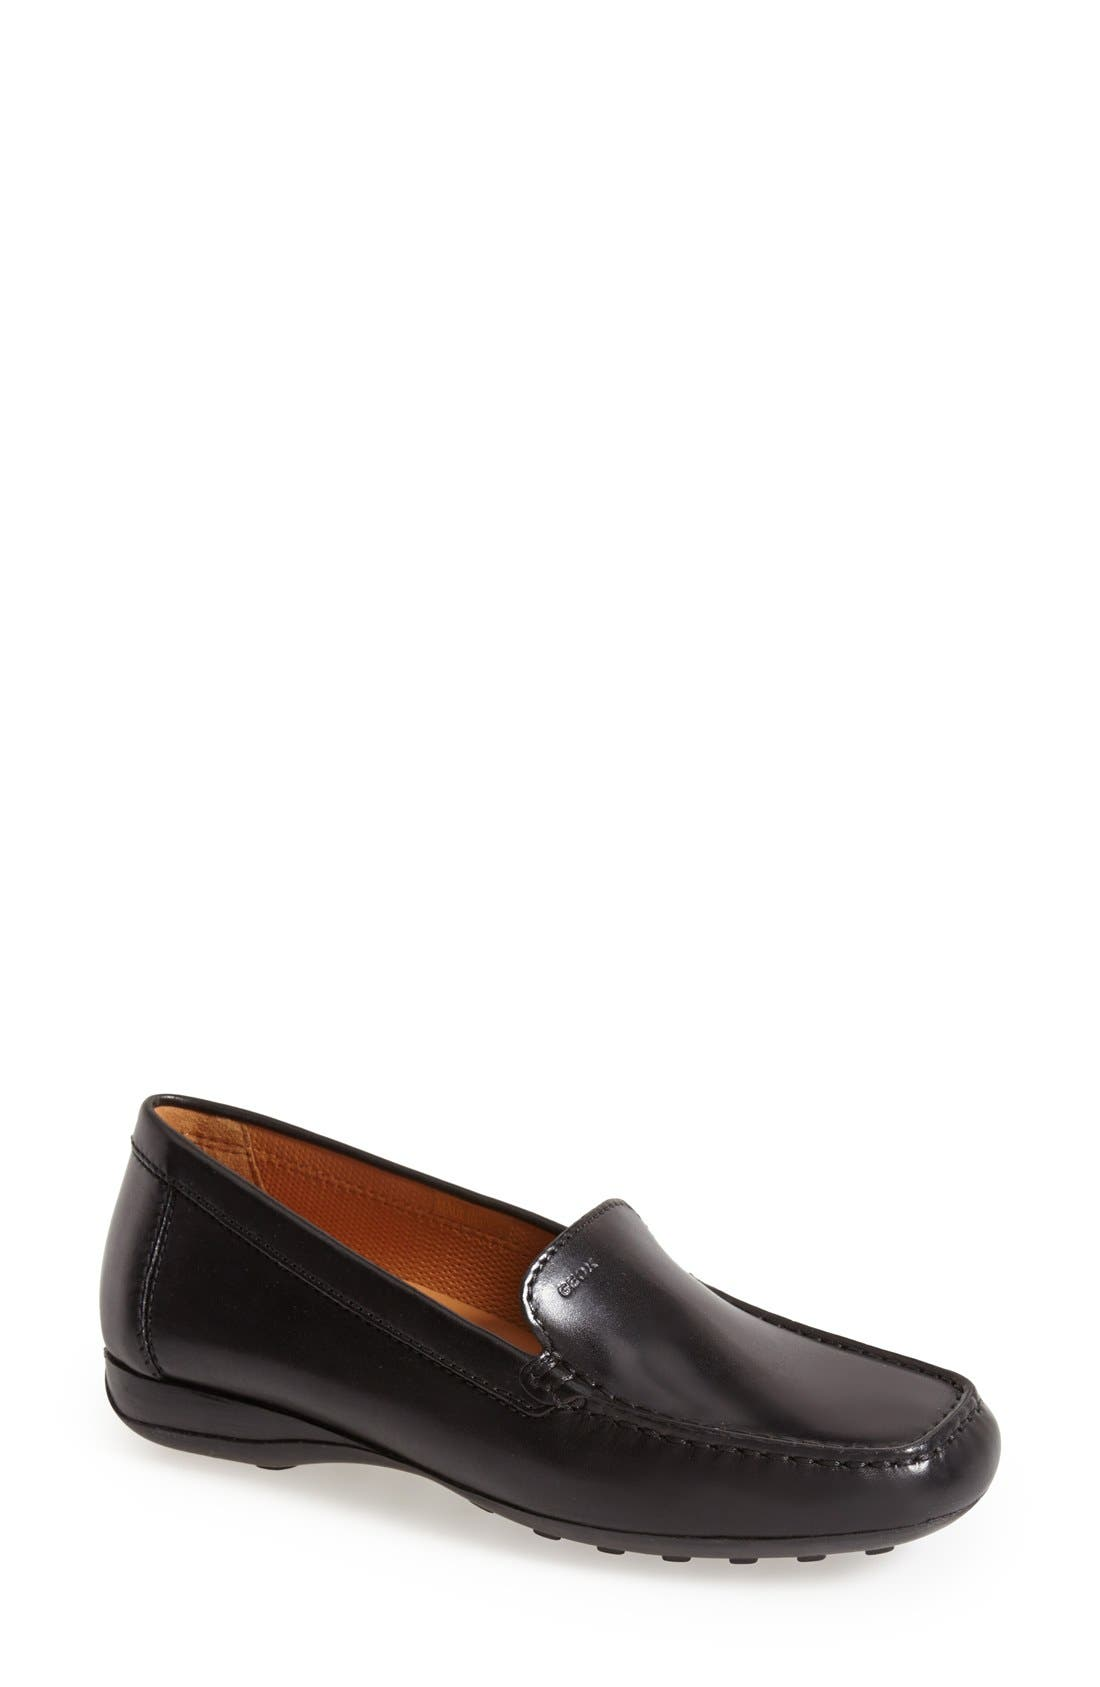 Main Image - Geox 'Euro 18' Loafer (Women)